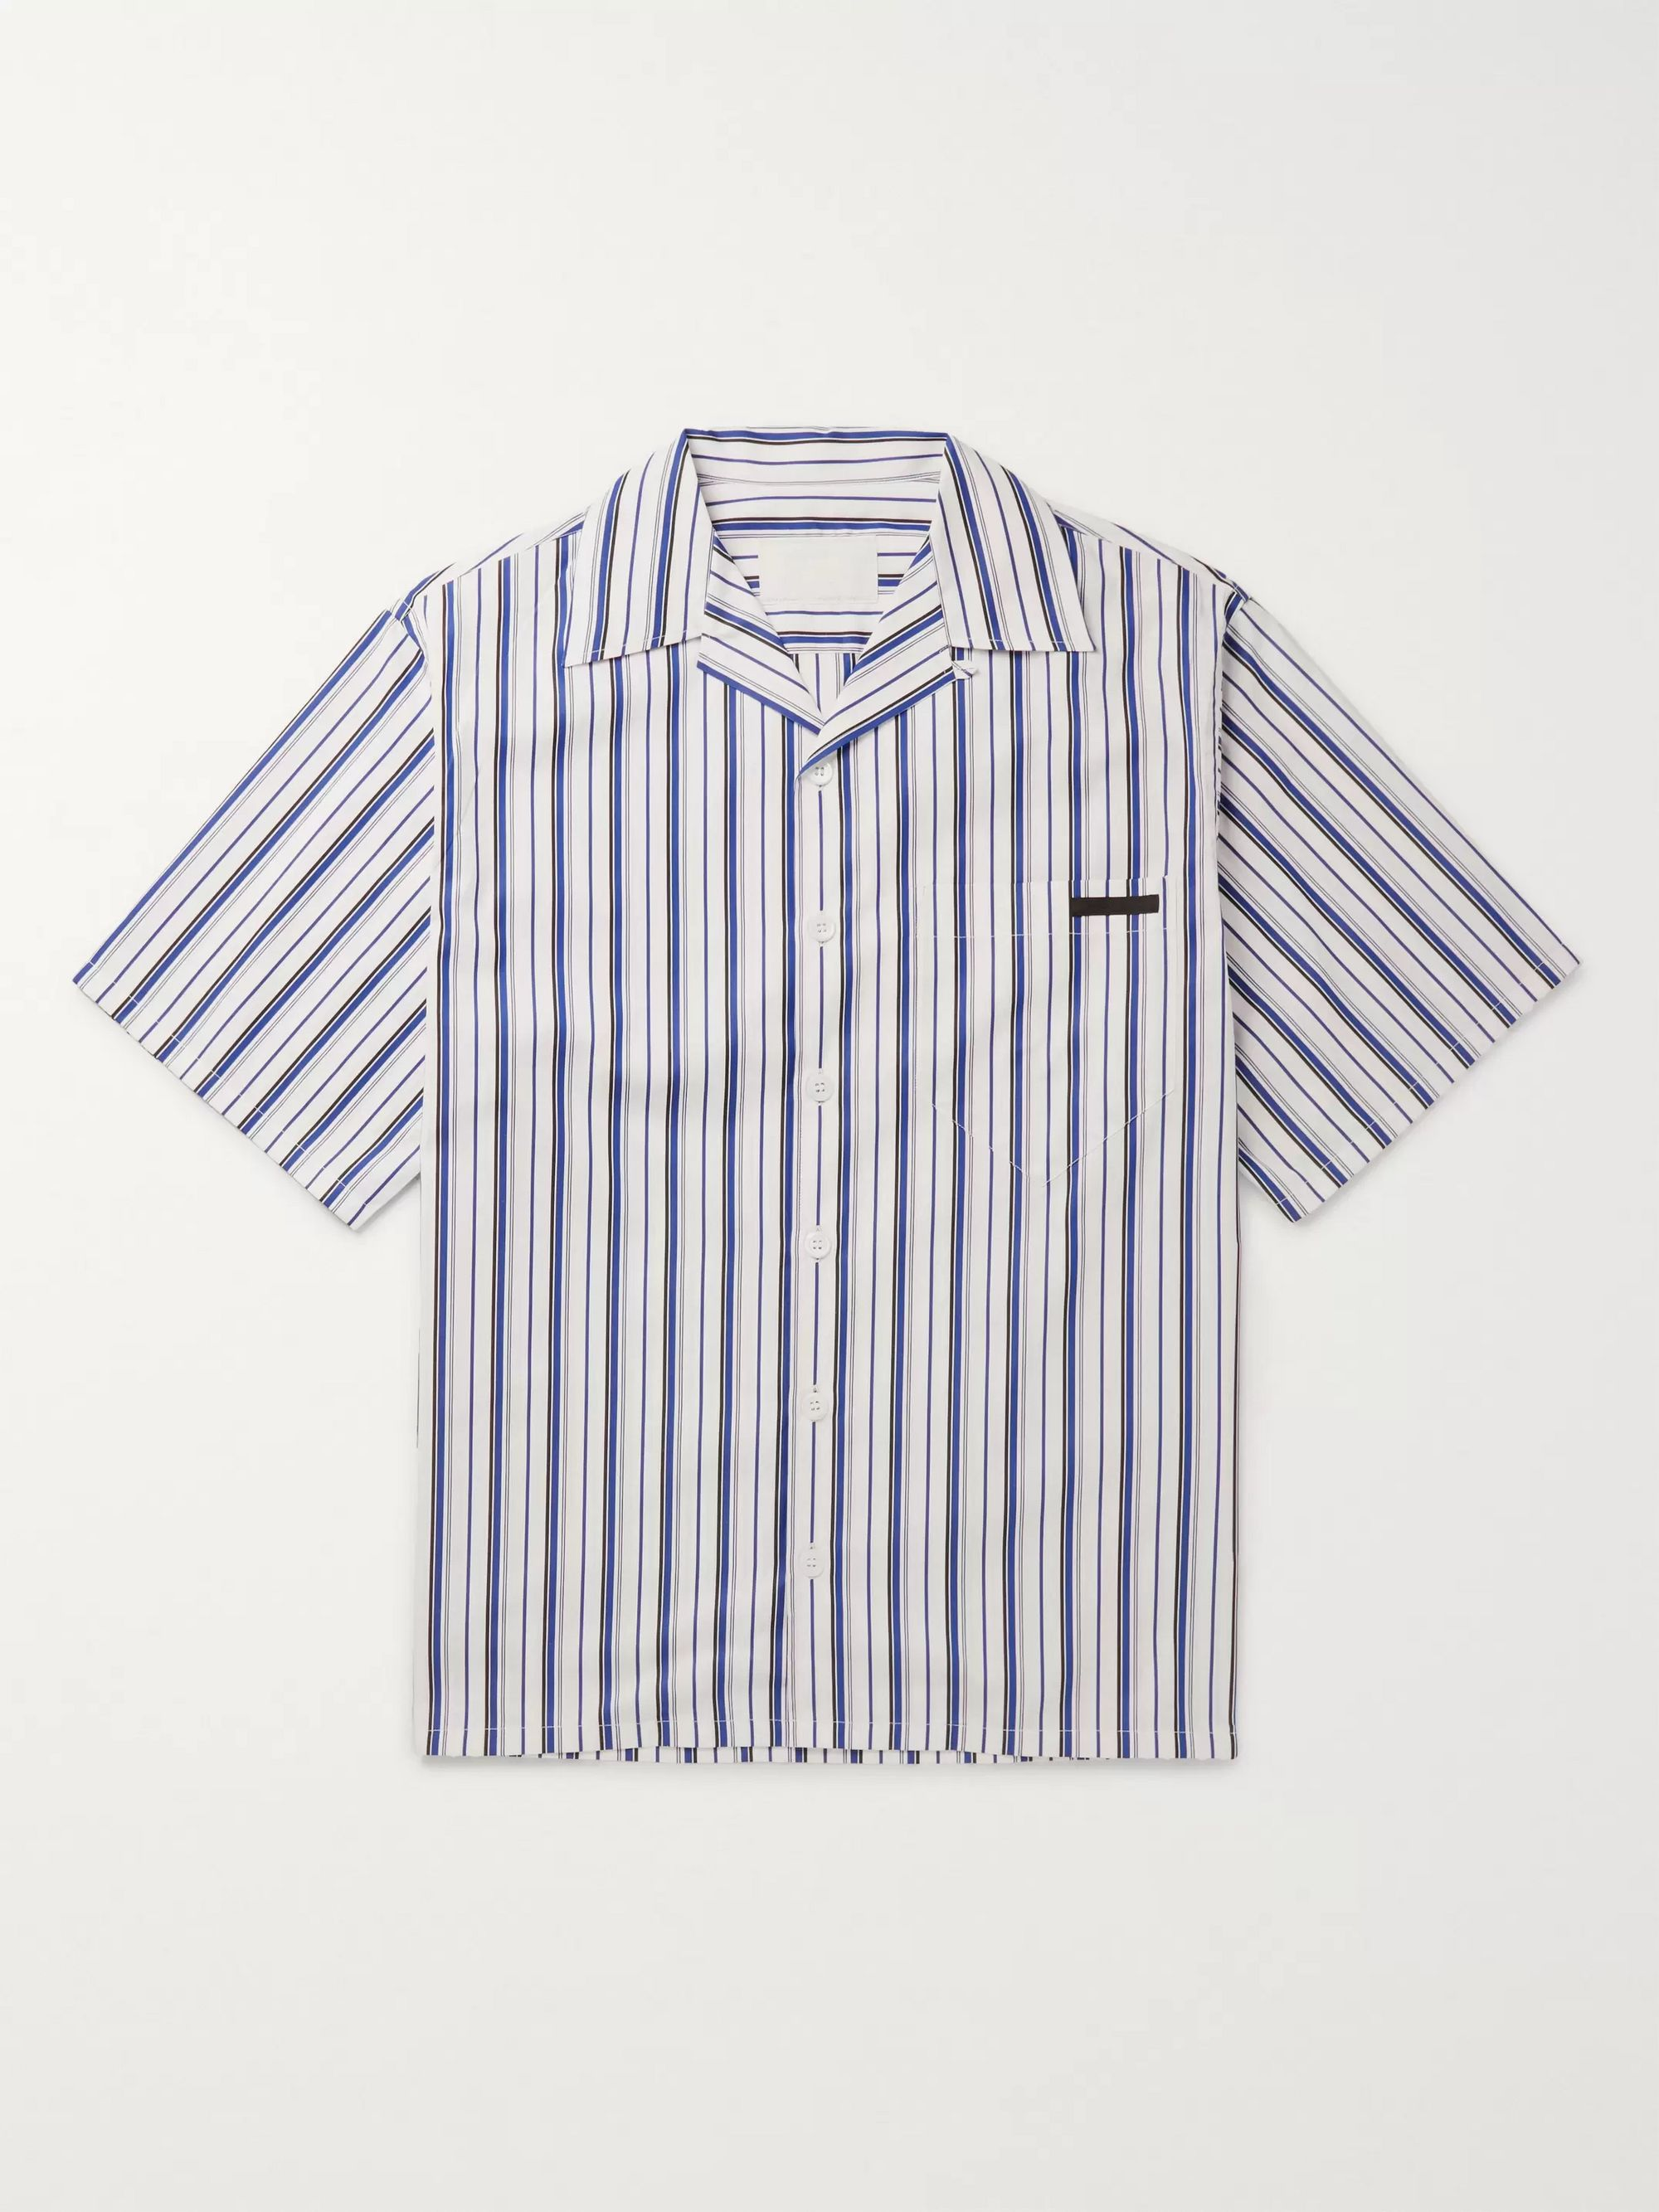 Prada Camp-Collar Striped Cotton Shirt